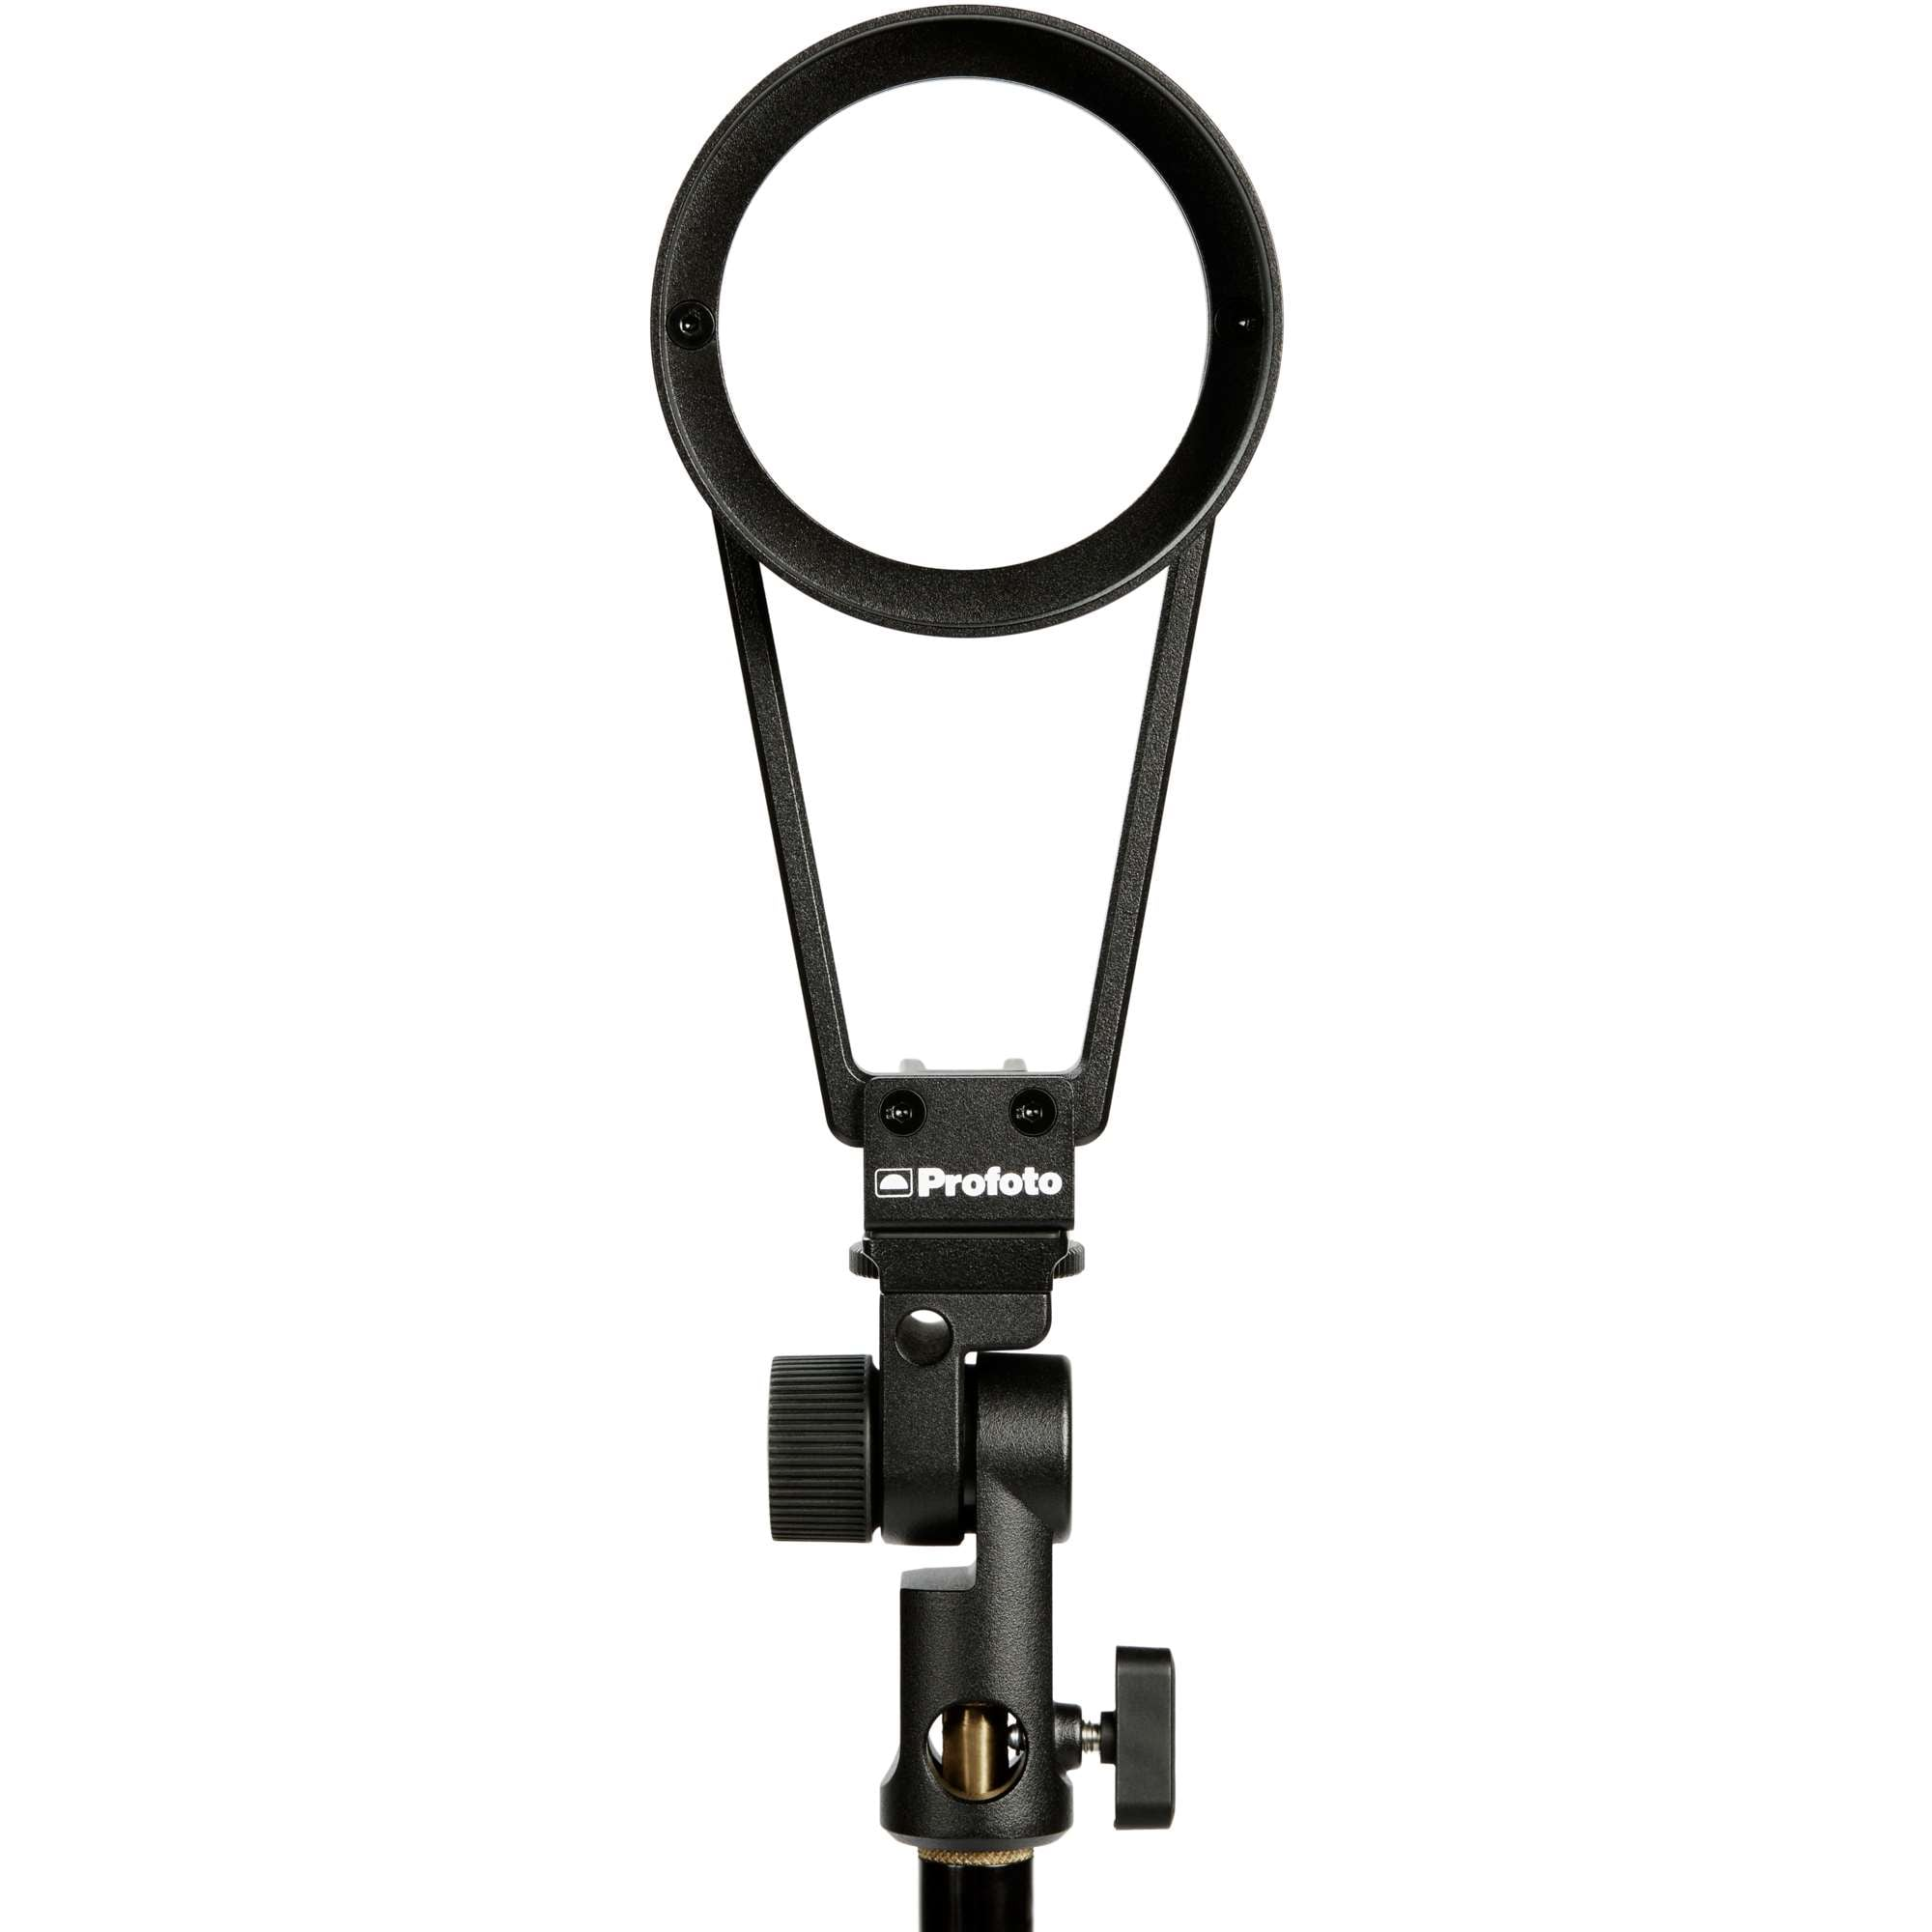 Profoto OCF Adapter